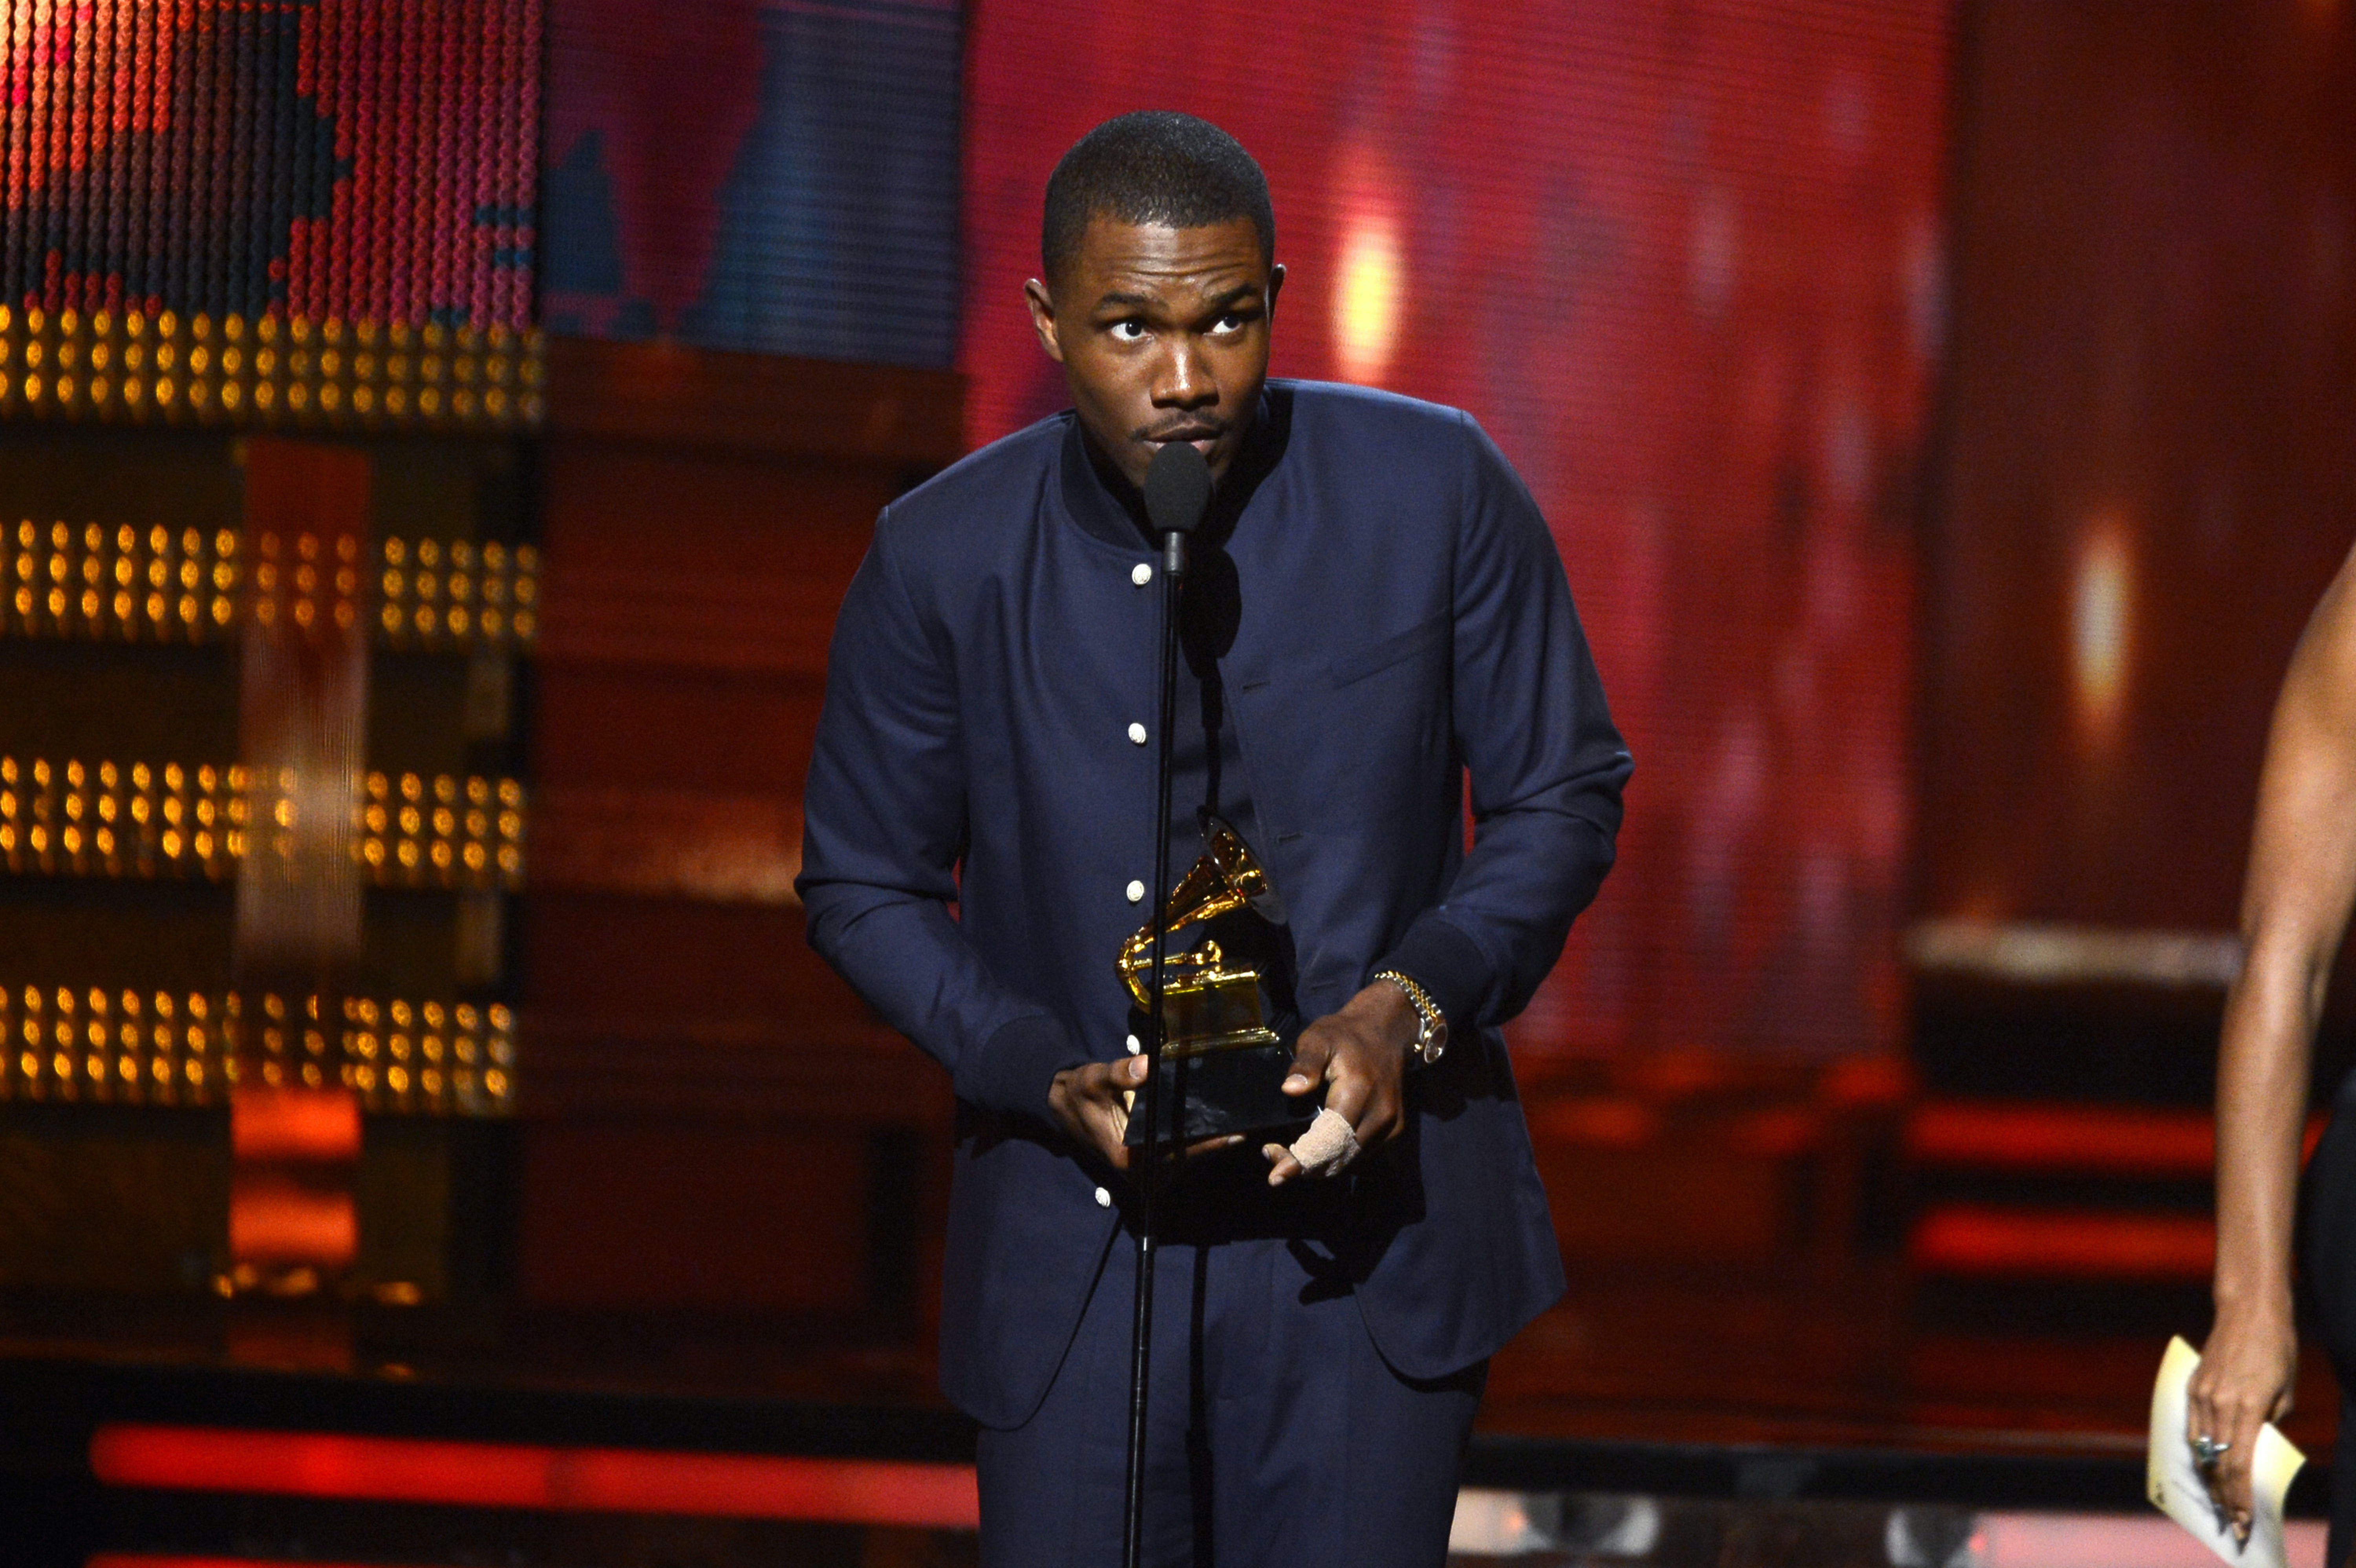 Singer Frank Ocean accepts Best Urban Contemporary Album award for 'Channel Orange' onstage at the 55th Annual GRAMMY Awards at Staples Center on February 10, 2013 in Los Angeles, California.